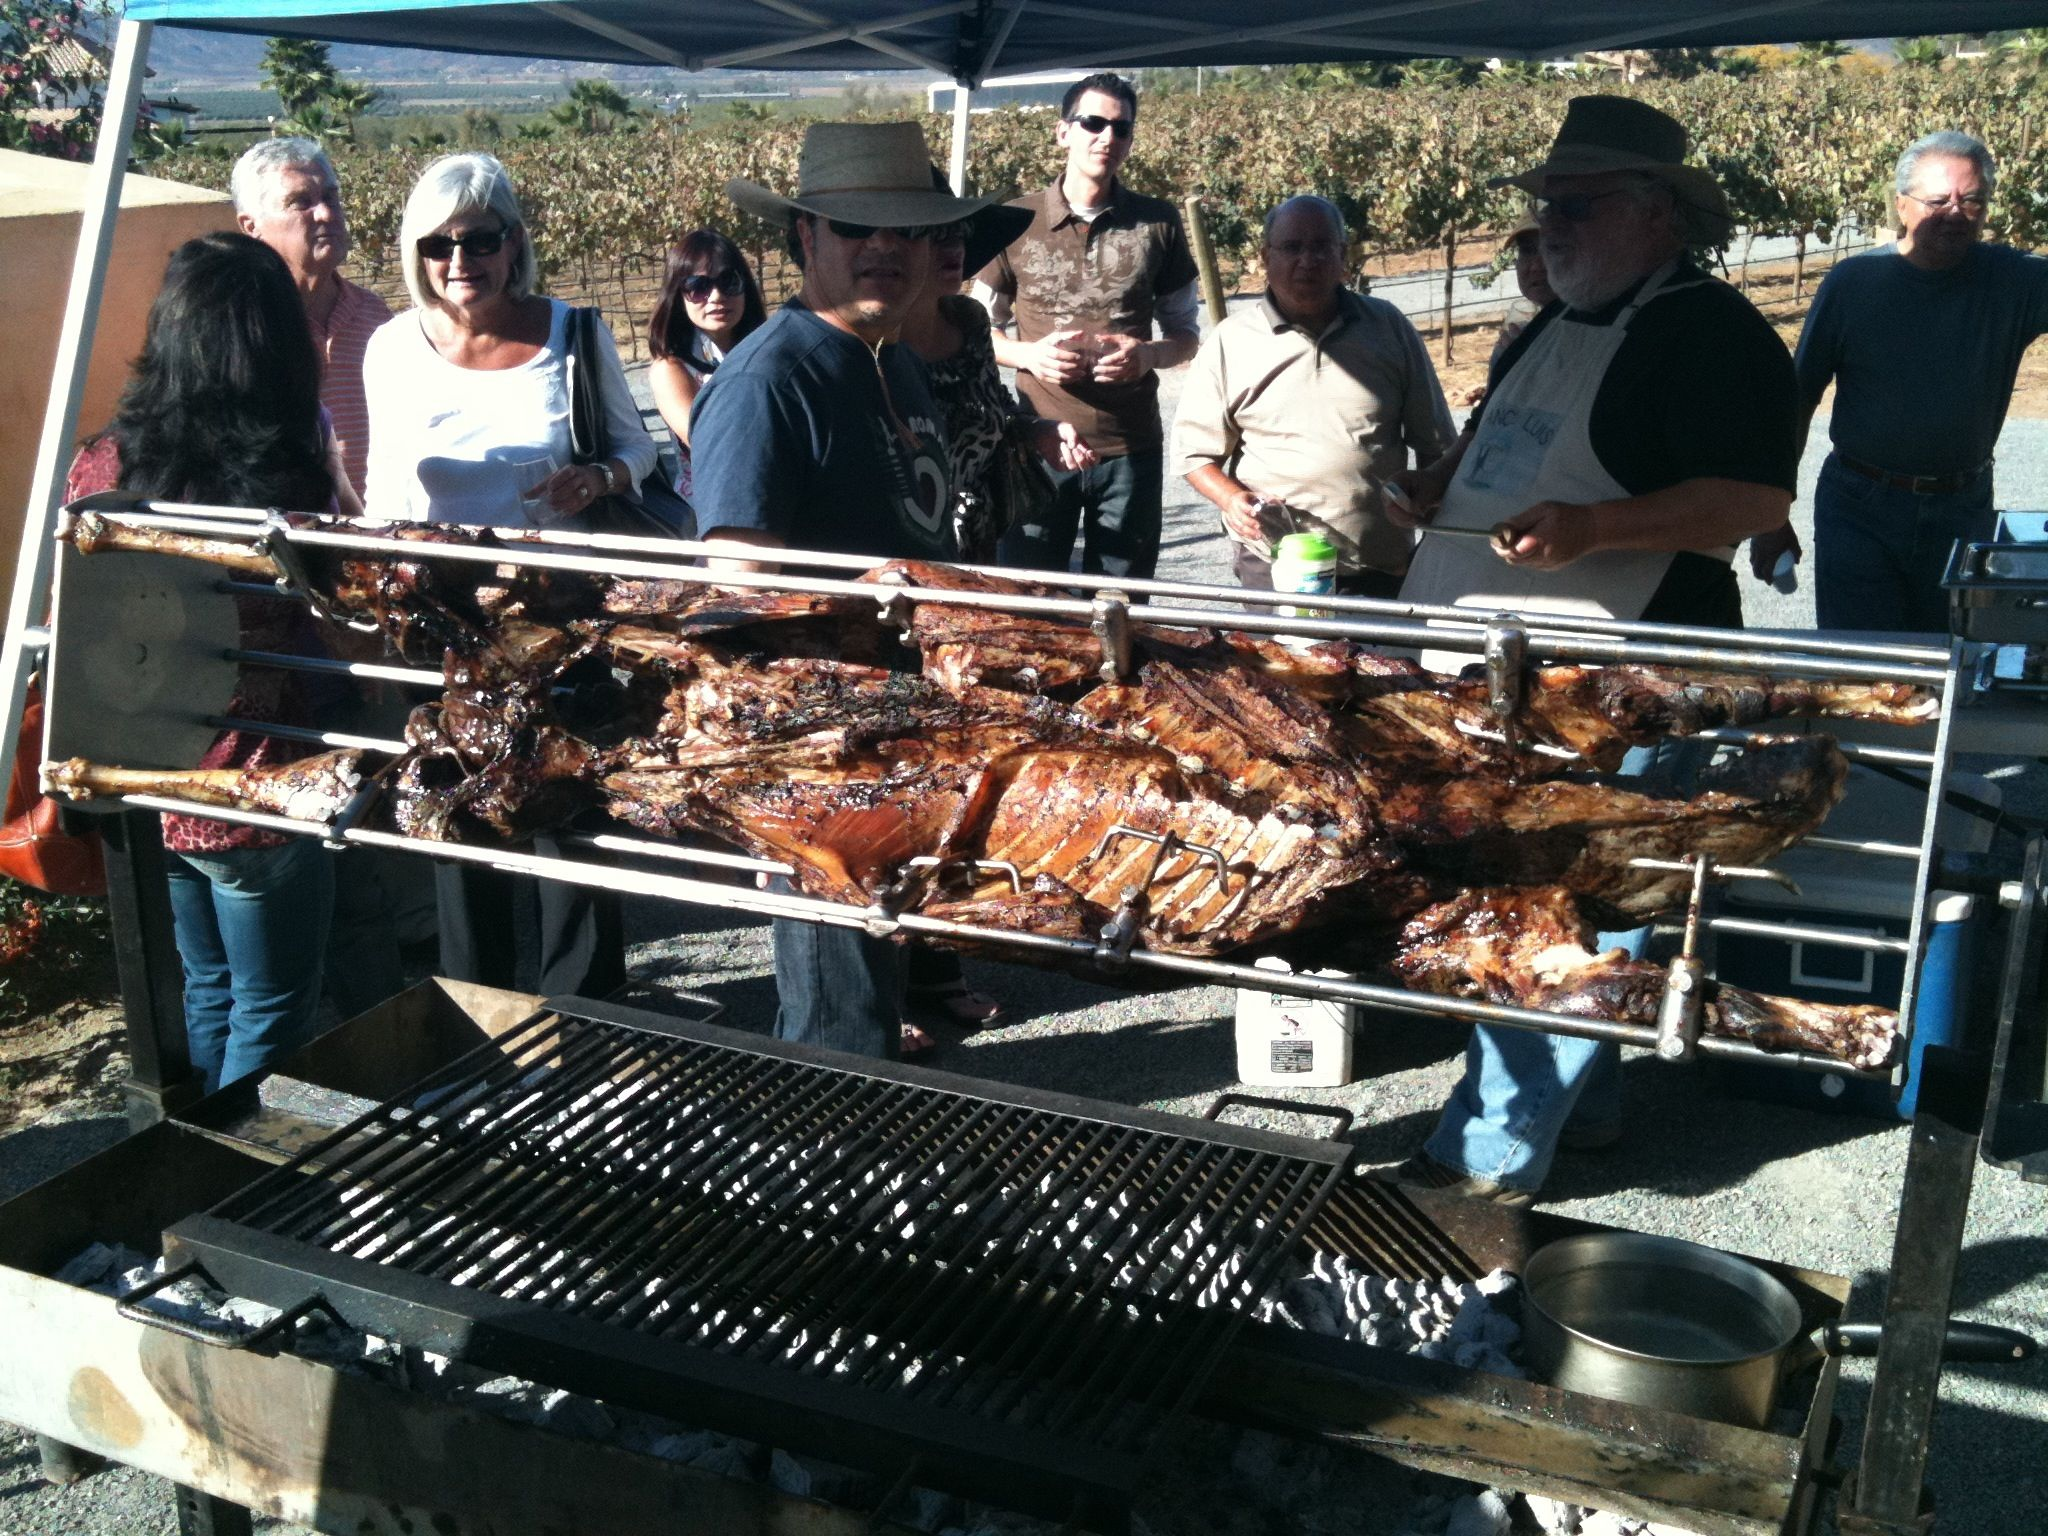 Whole roast lamb on the spit for lunch at Lechuza Vineyards